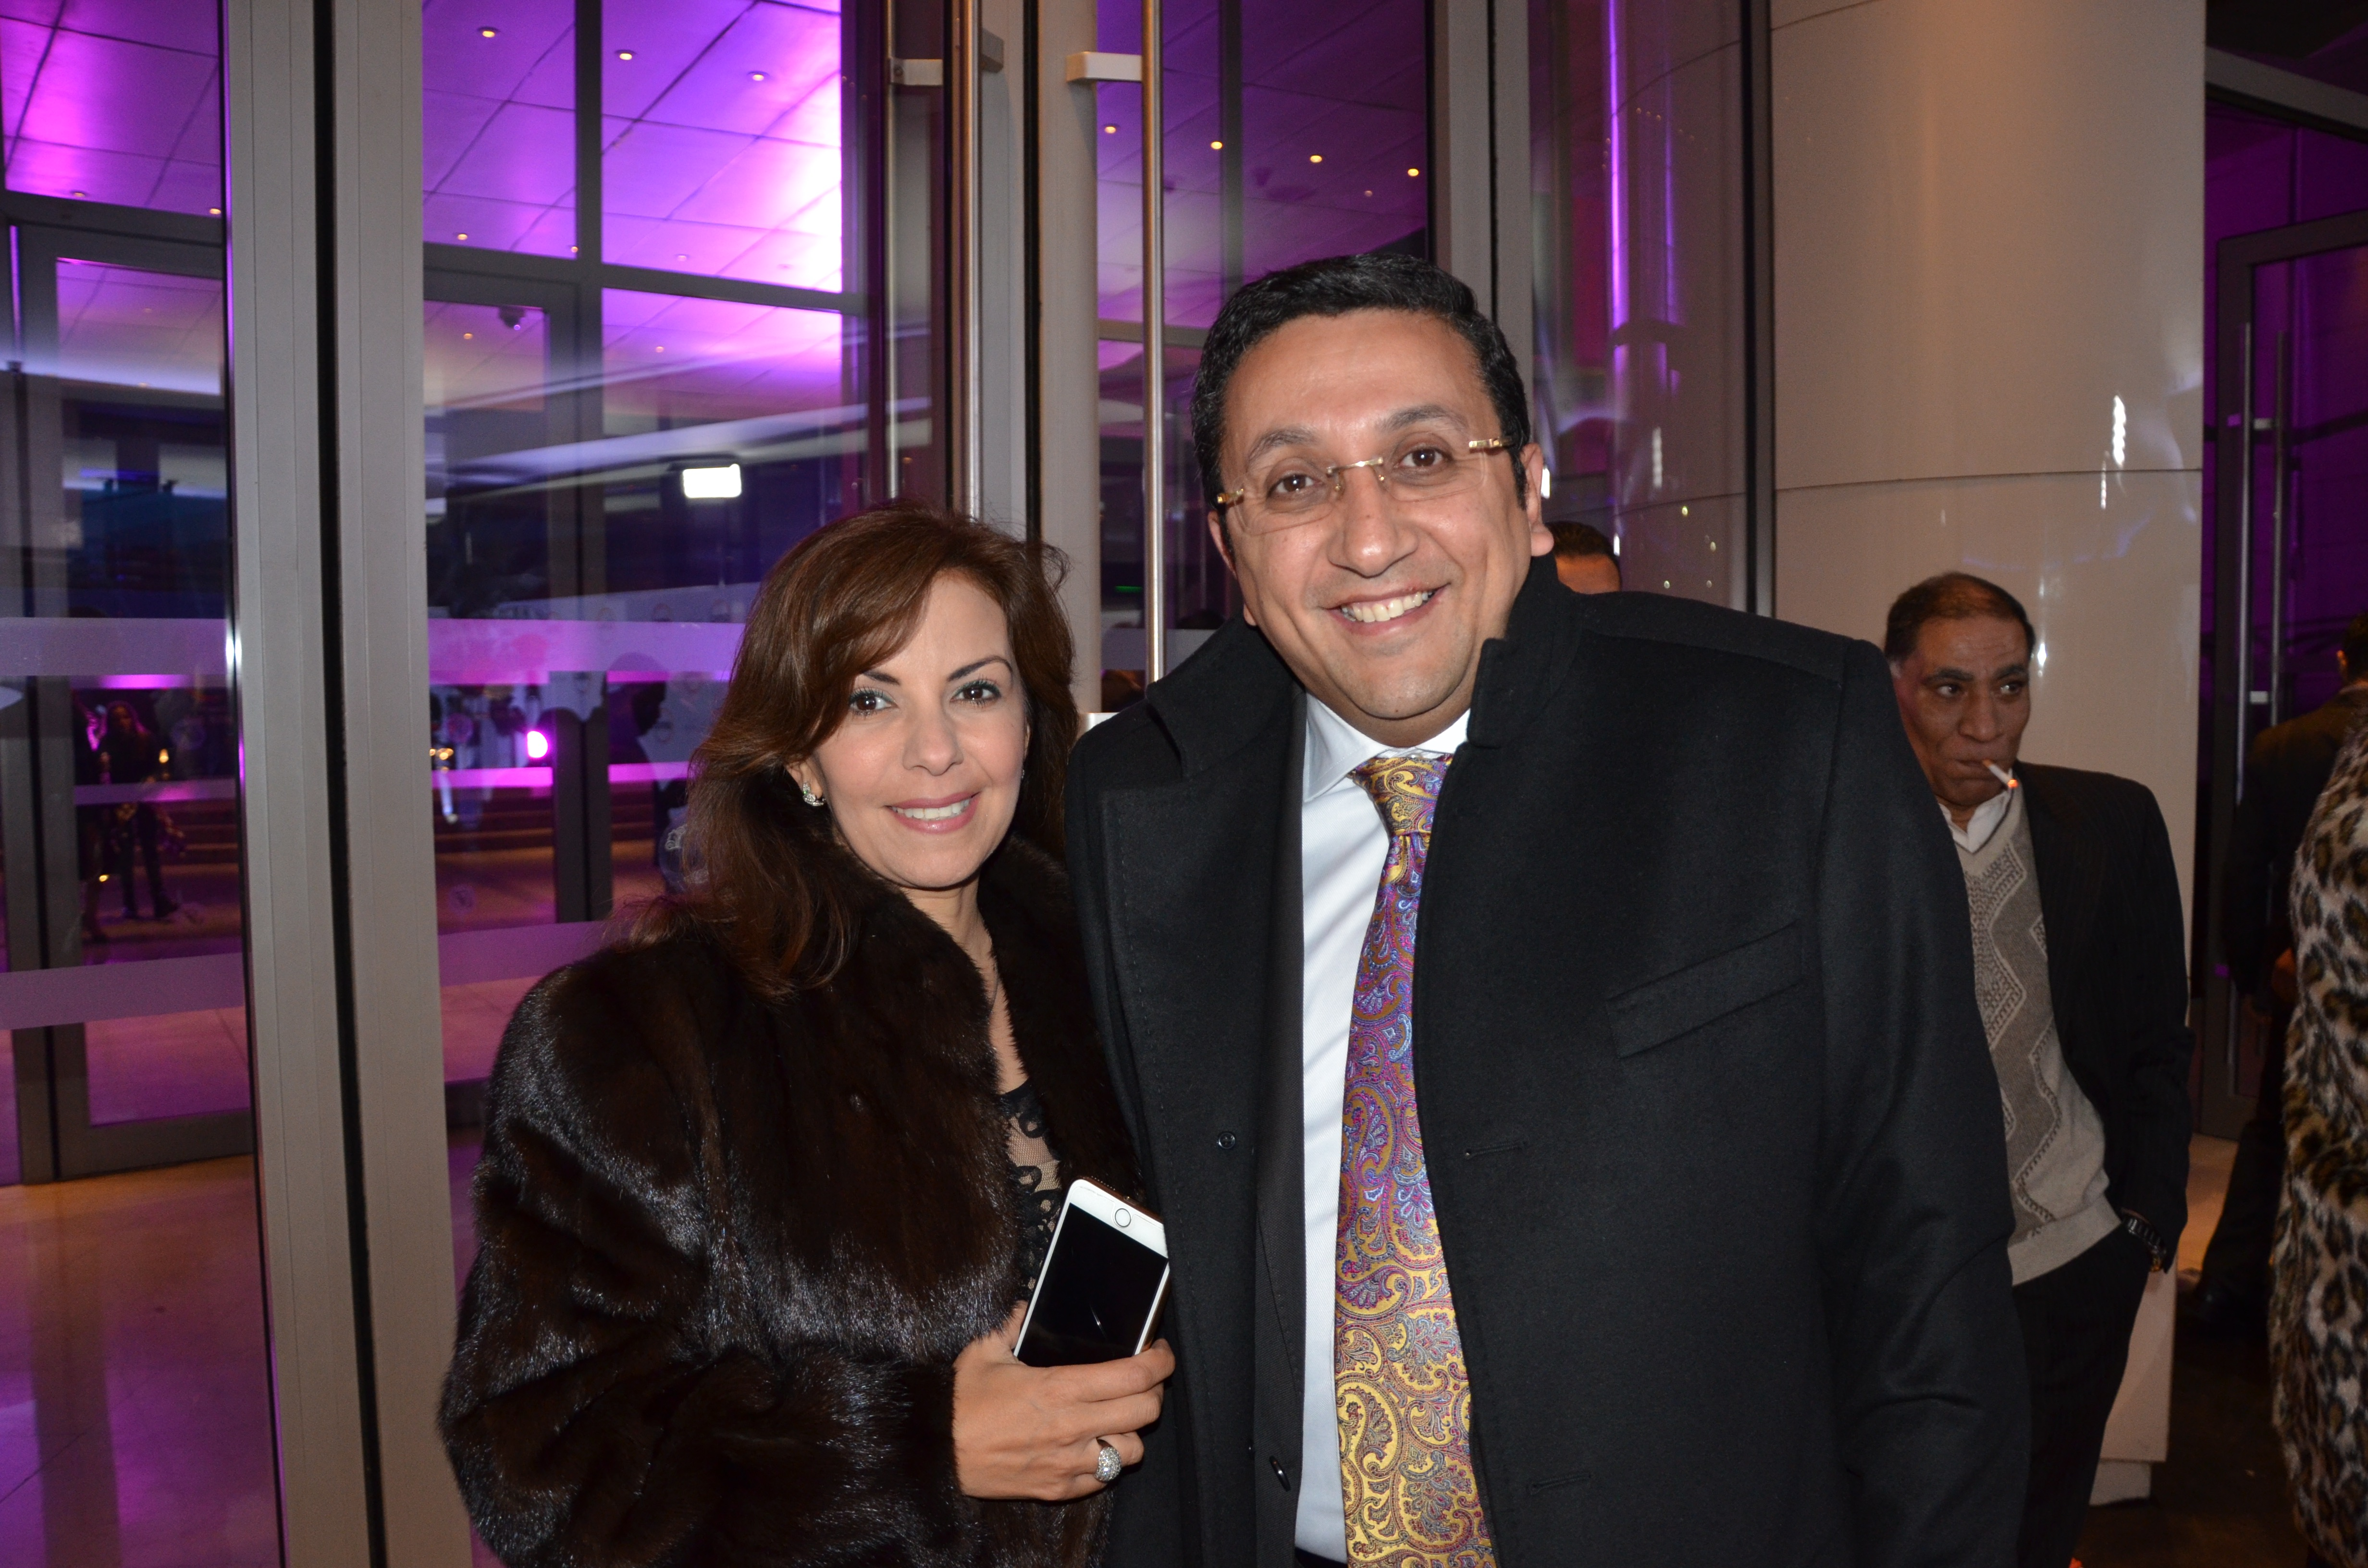 Dr. Ehab Ramzy and his wife